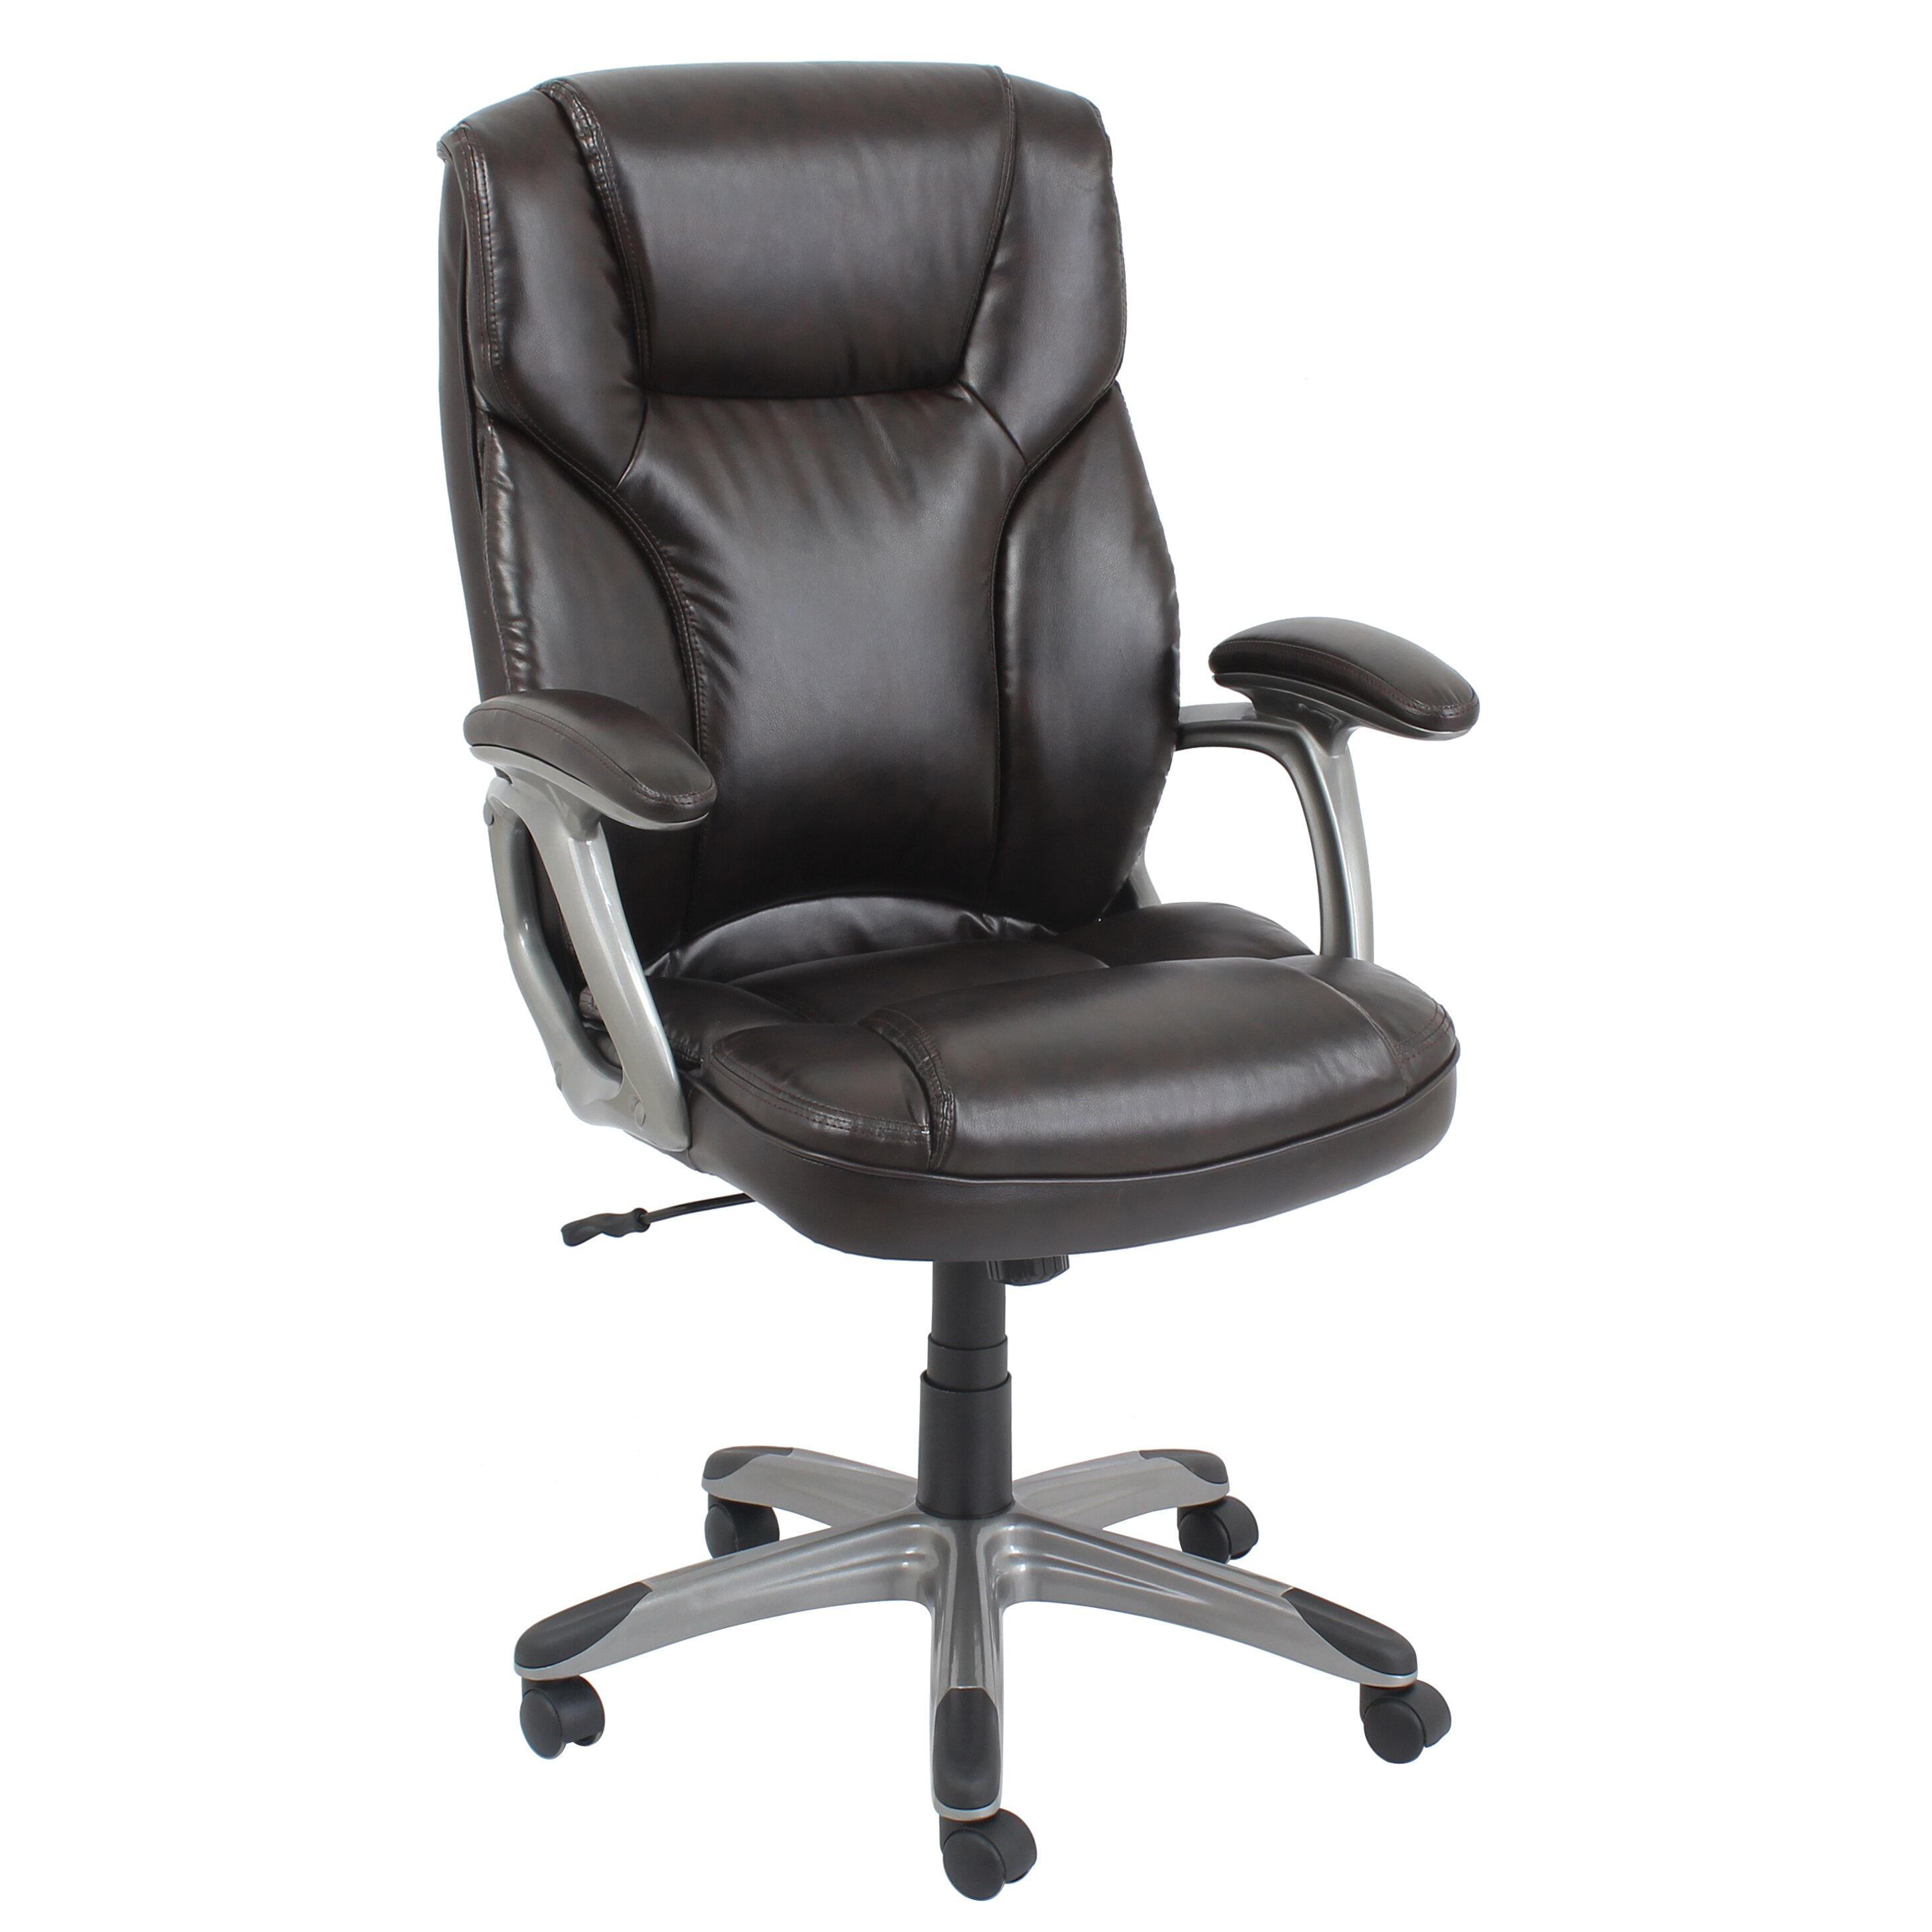 barcalounger high back leather executive office chair with arms